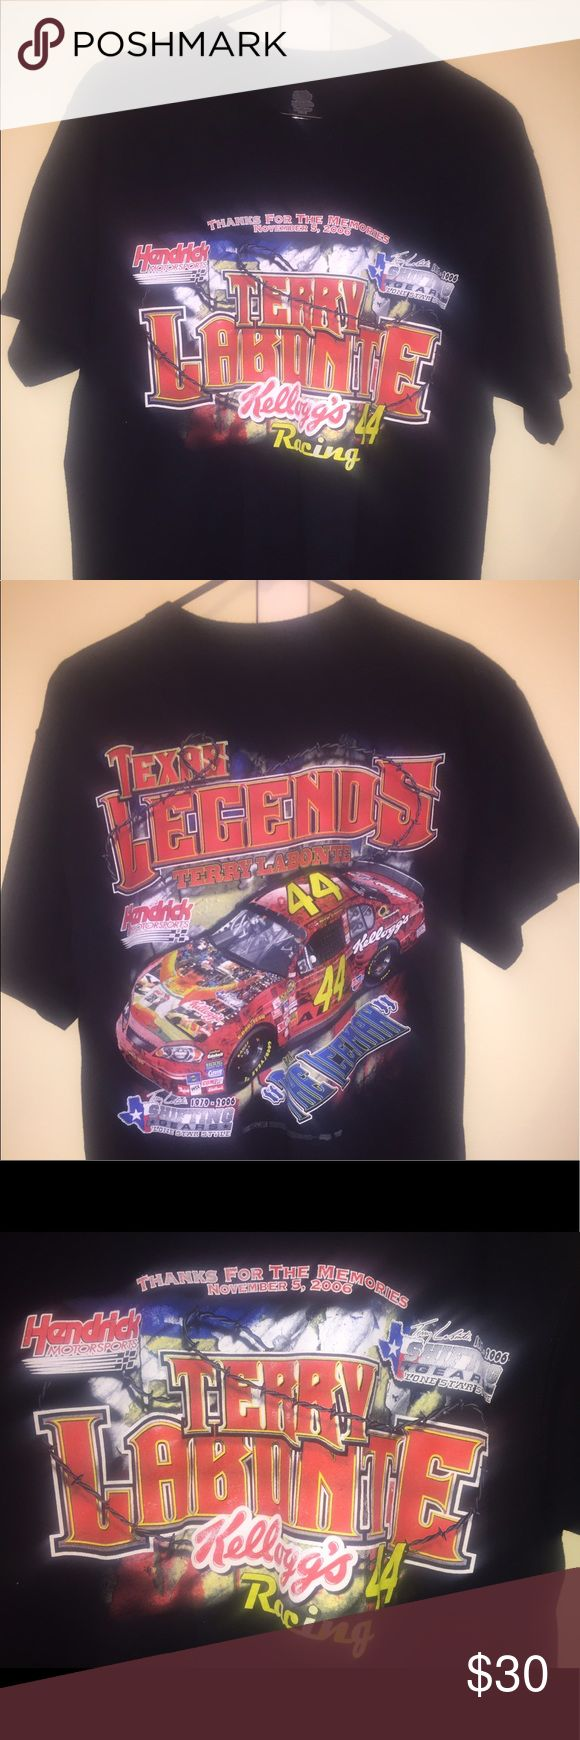 Vintage NASCAR T-Shirt Excellent condition NASCAR T-Shirt. Print in double sided no cracking.  Shirt has no flaws and has been washed. Size Large. Fits TTS (could fit a medium well). Supreme Shirts Tees - Short Sleeve